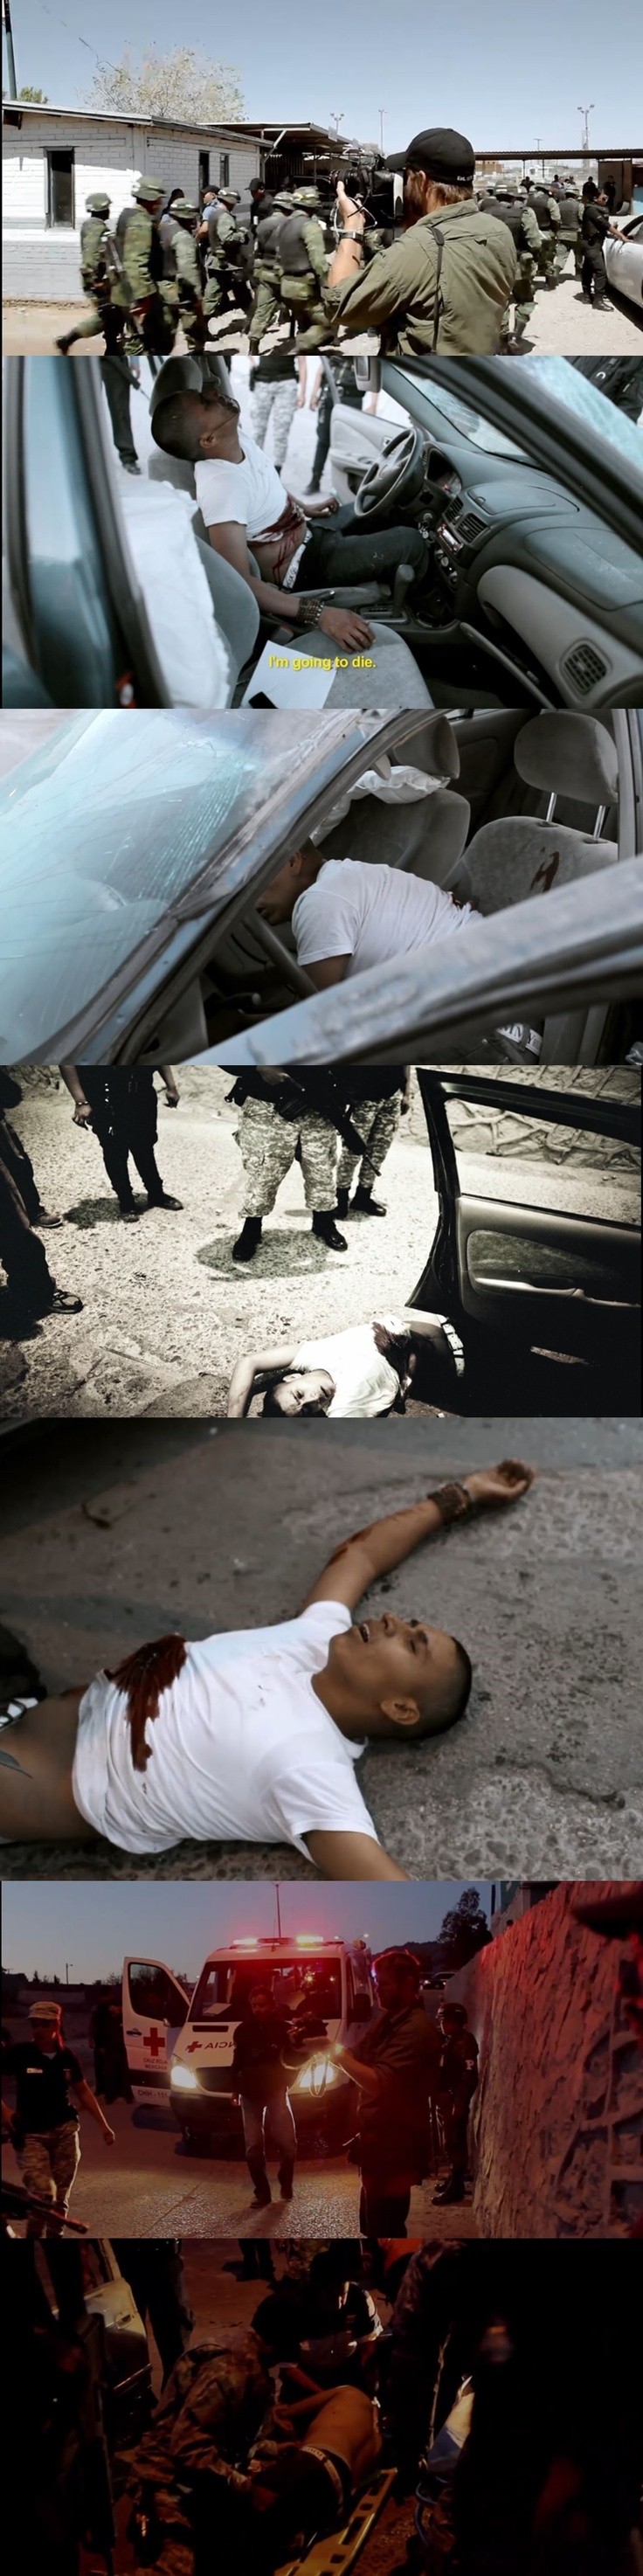 This Is 1 Of 10,000 Killings That Took Place In Juarez Mexico That Year  These